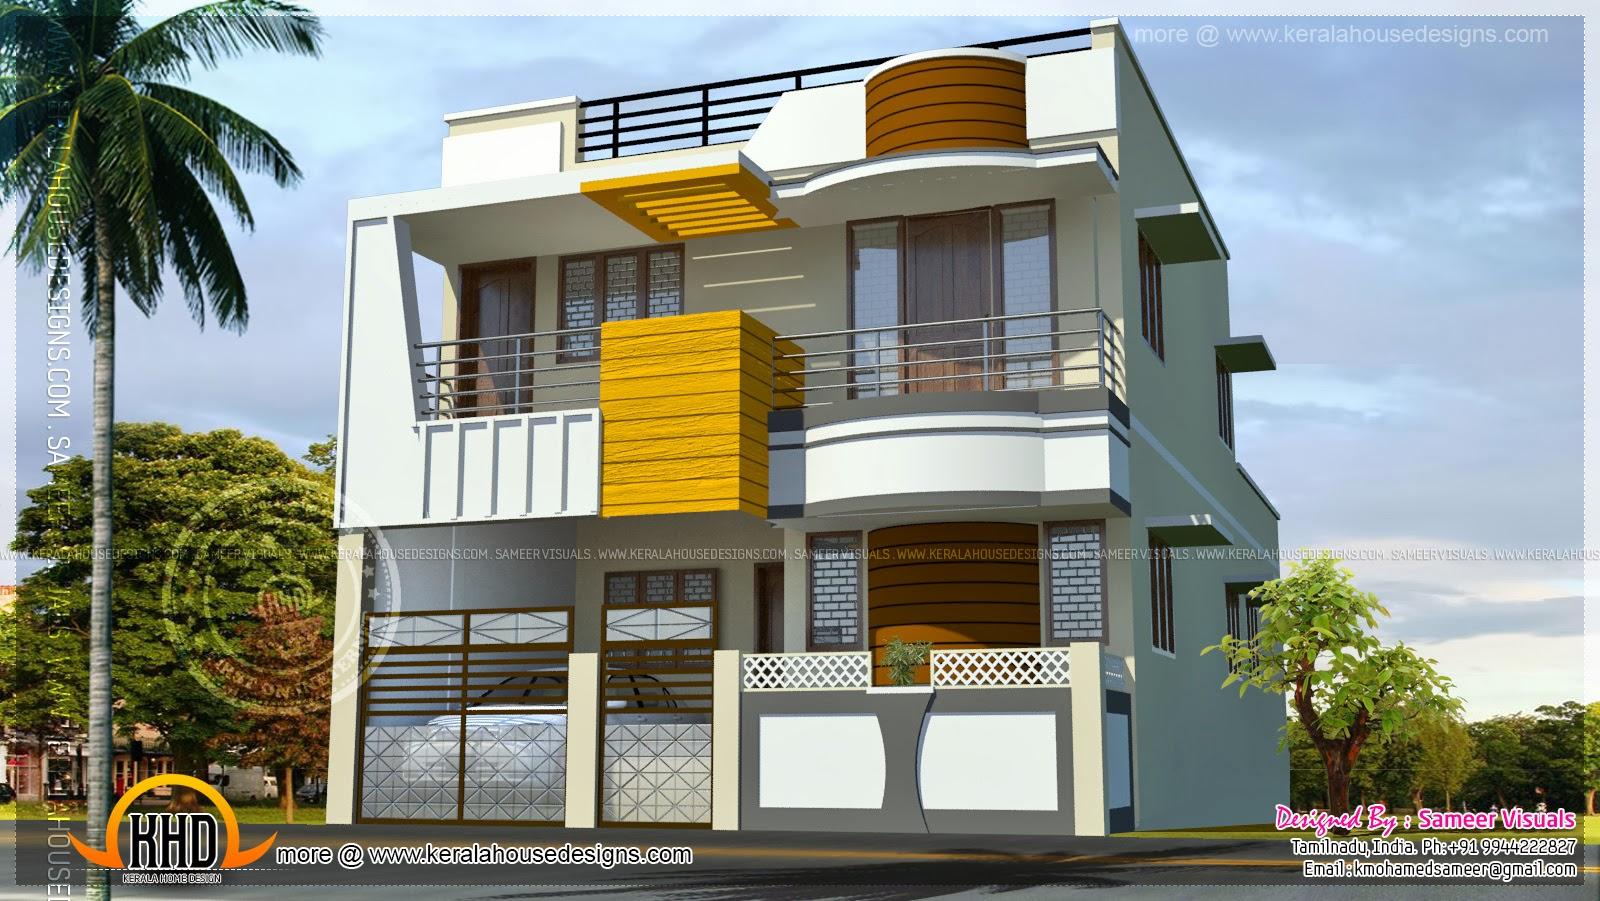 Double storied modern south indian home kerala home for South indian model house plan